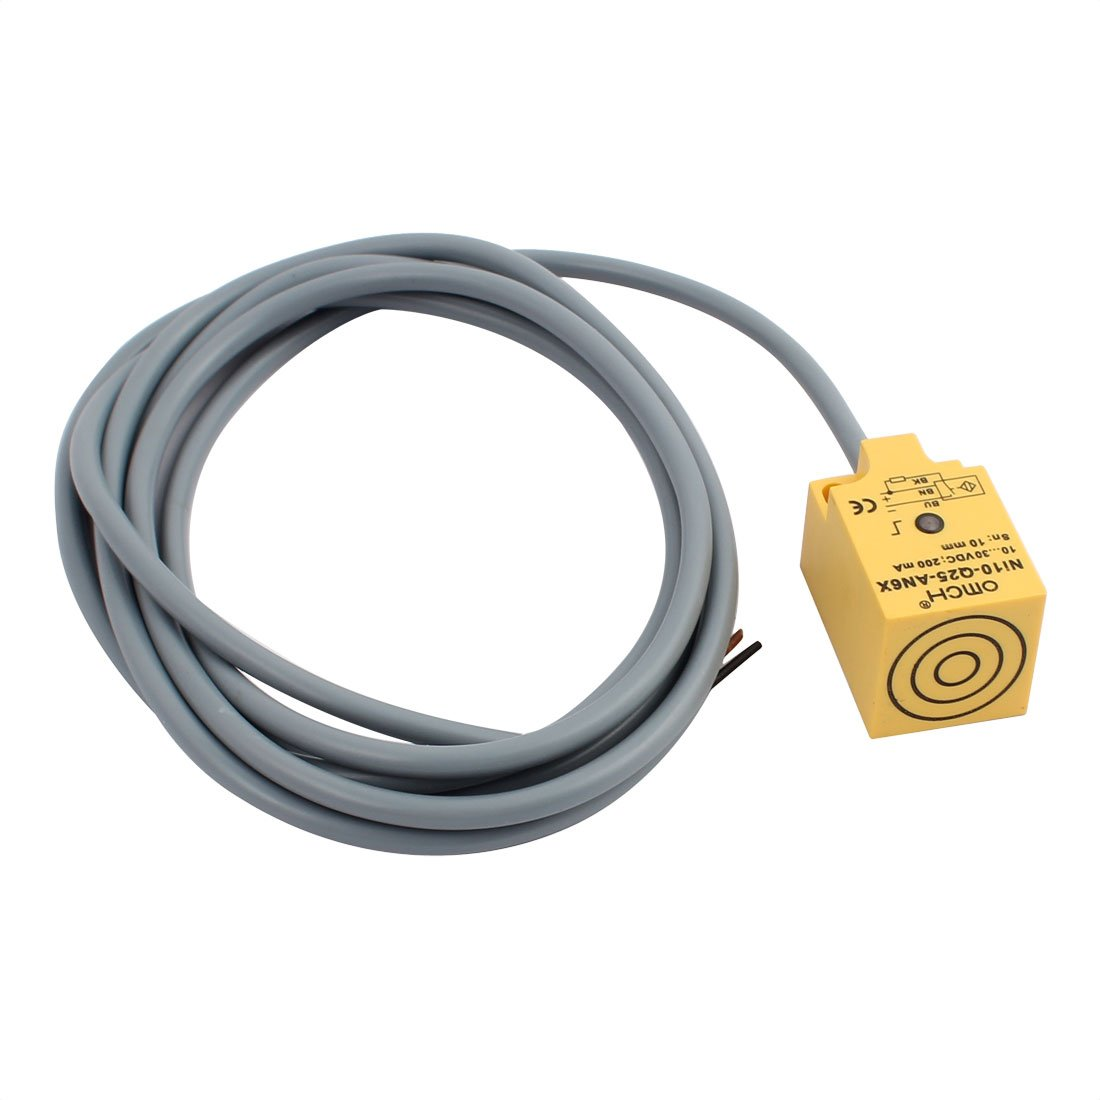 Aexit NI10-Q25-AN6X DC 10-30V 200mA NPN NO 10mm Inductive Proximity Sensor Switch 3-Wire